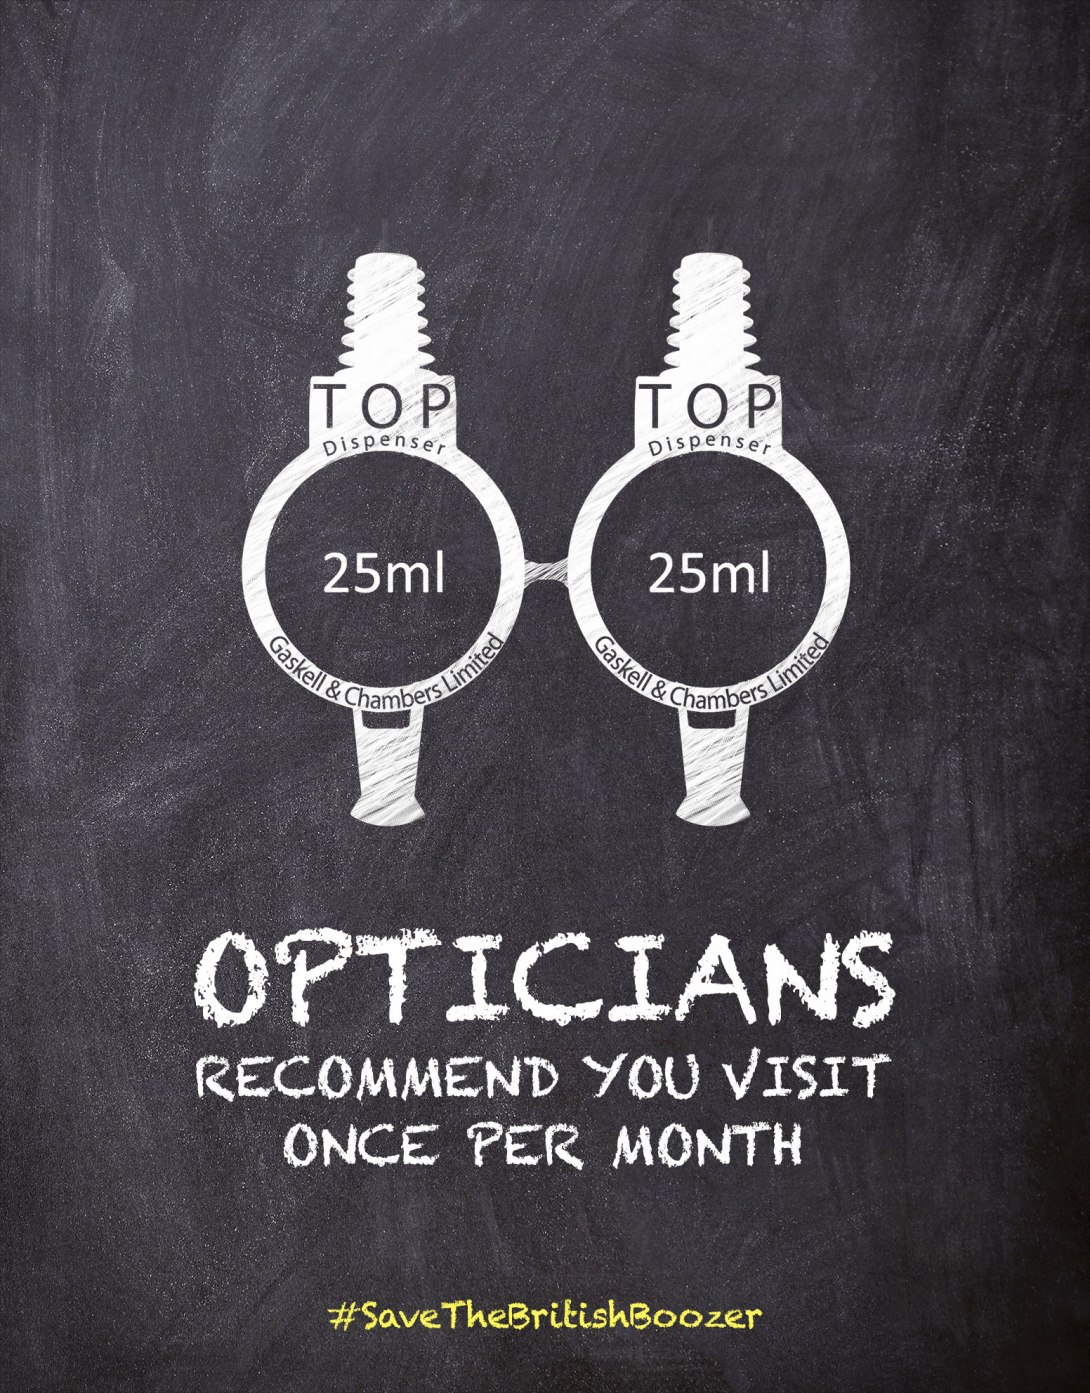 ad idea to save the British boozer - optics opticians